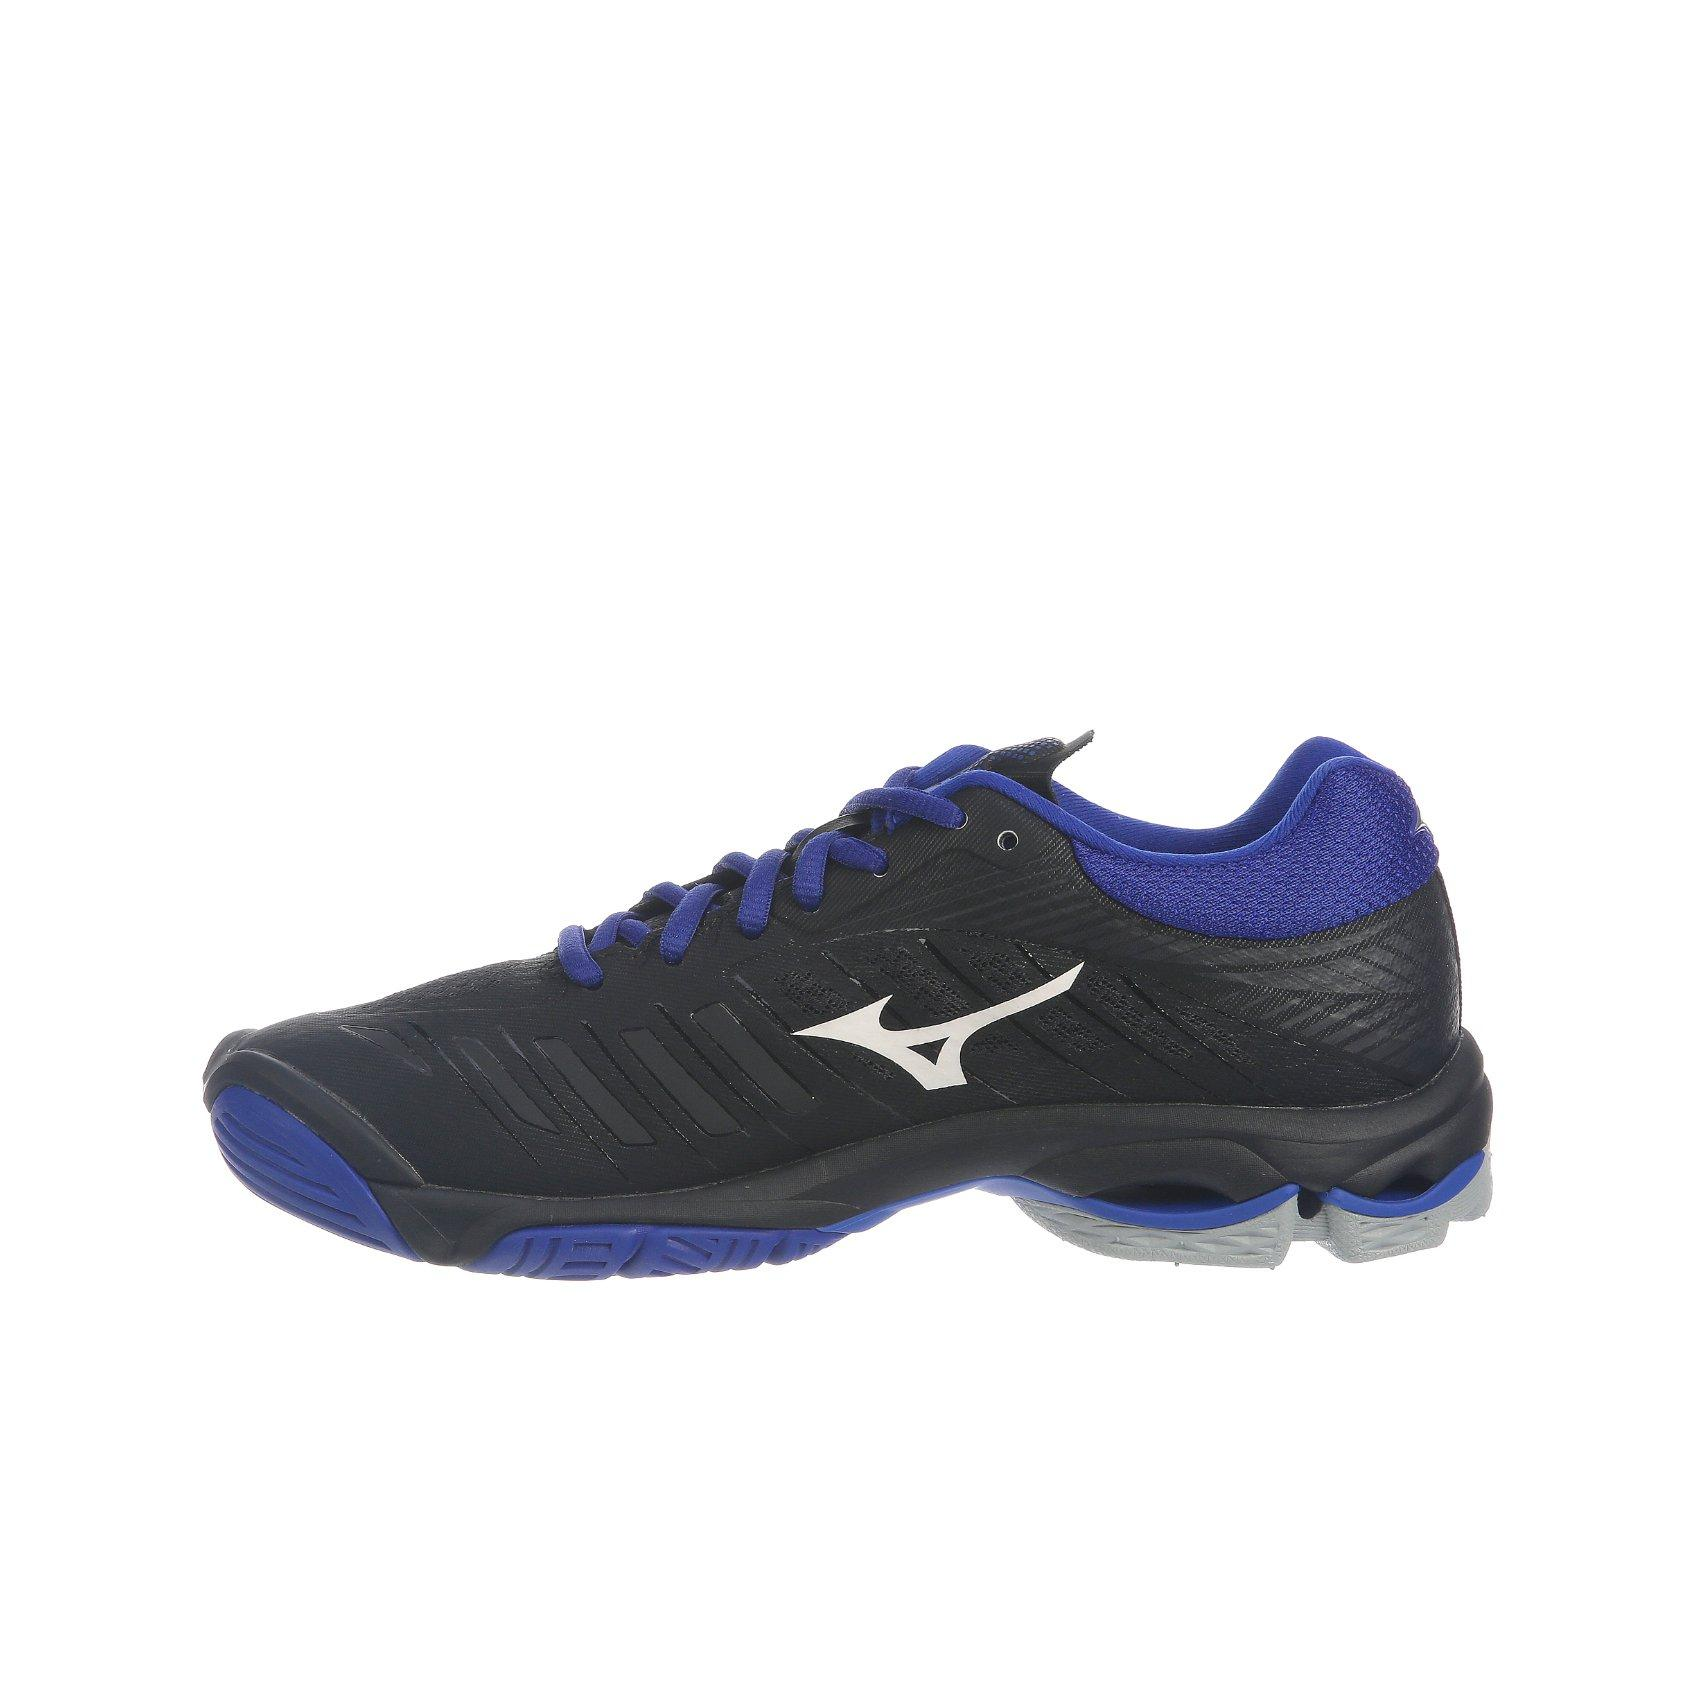 mizuno womens volleyball shoes size 8 x 3 inch down page gratis